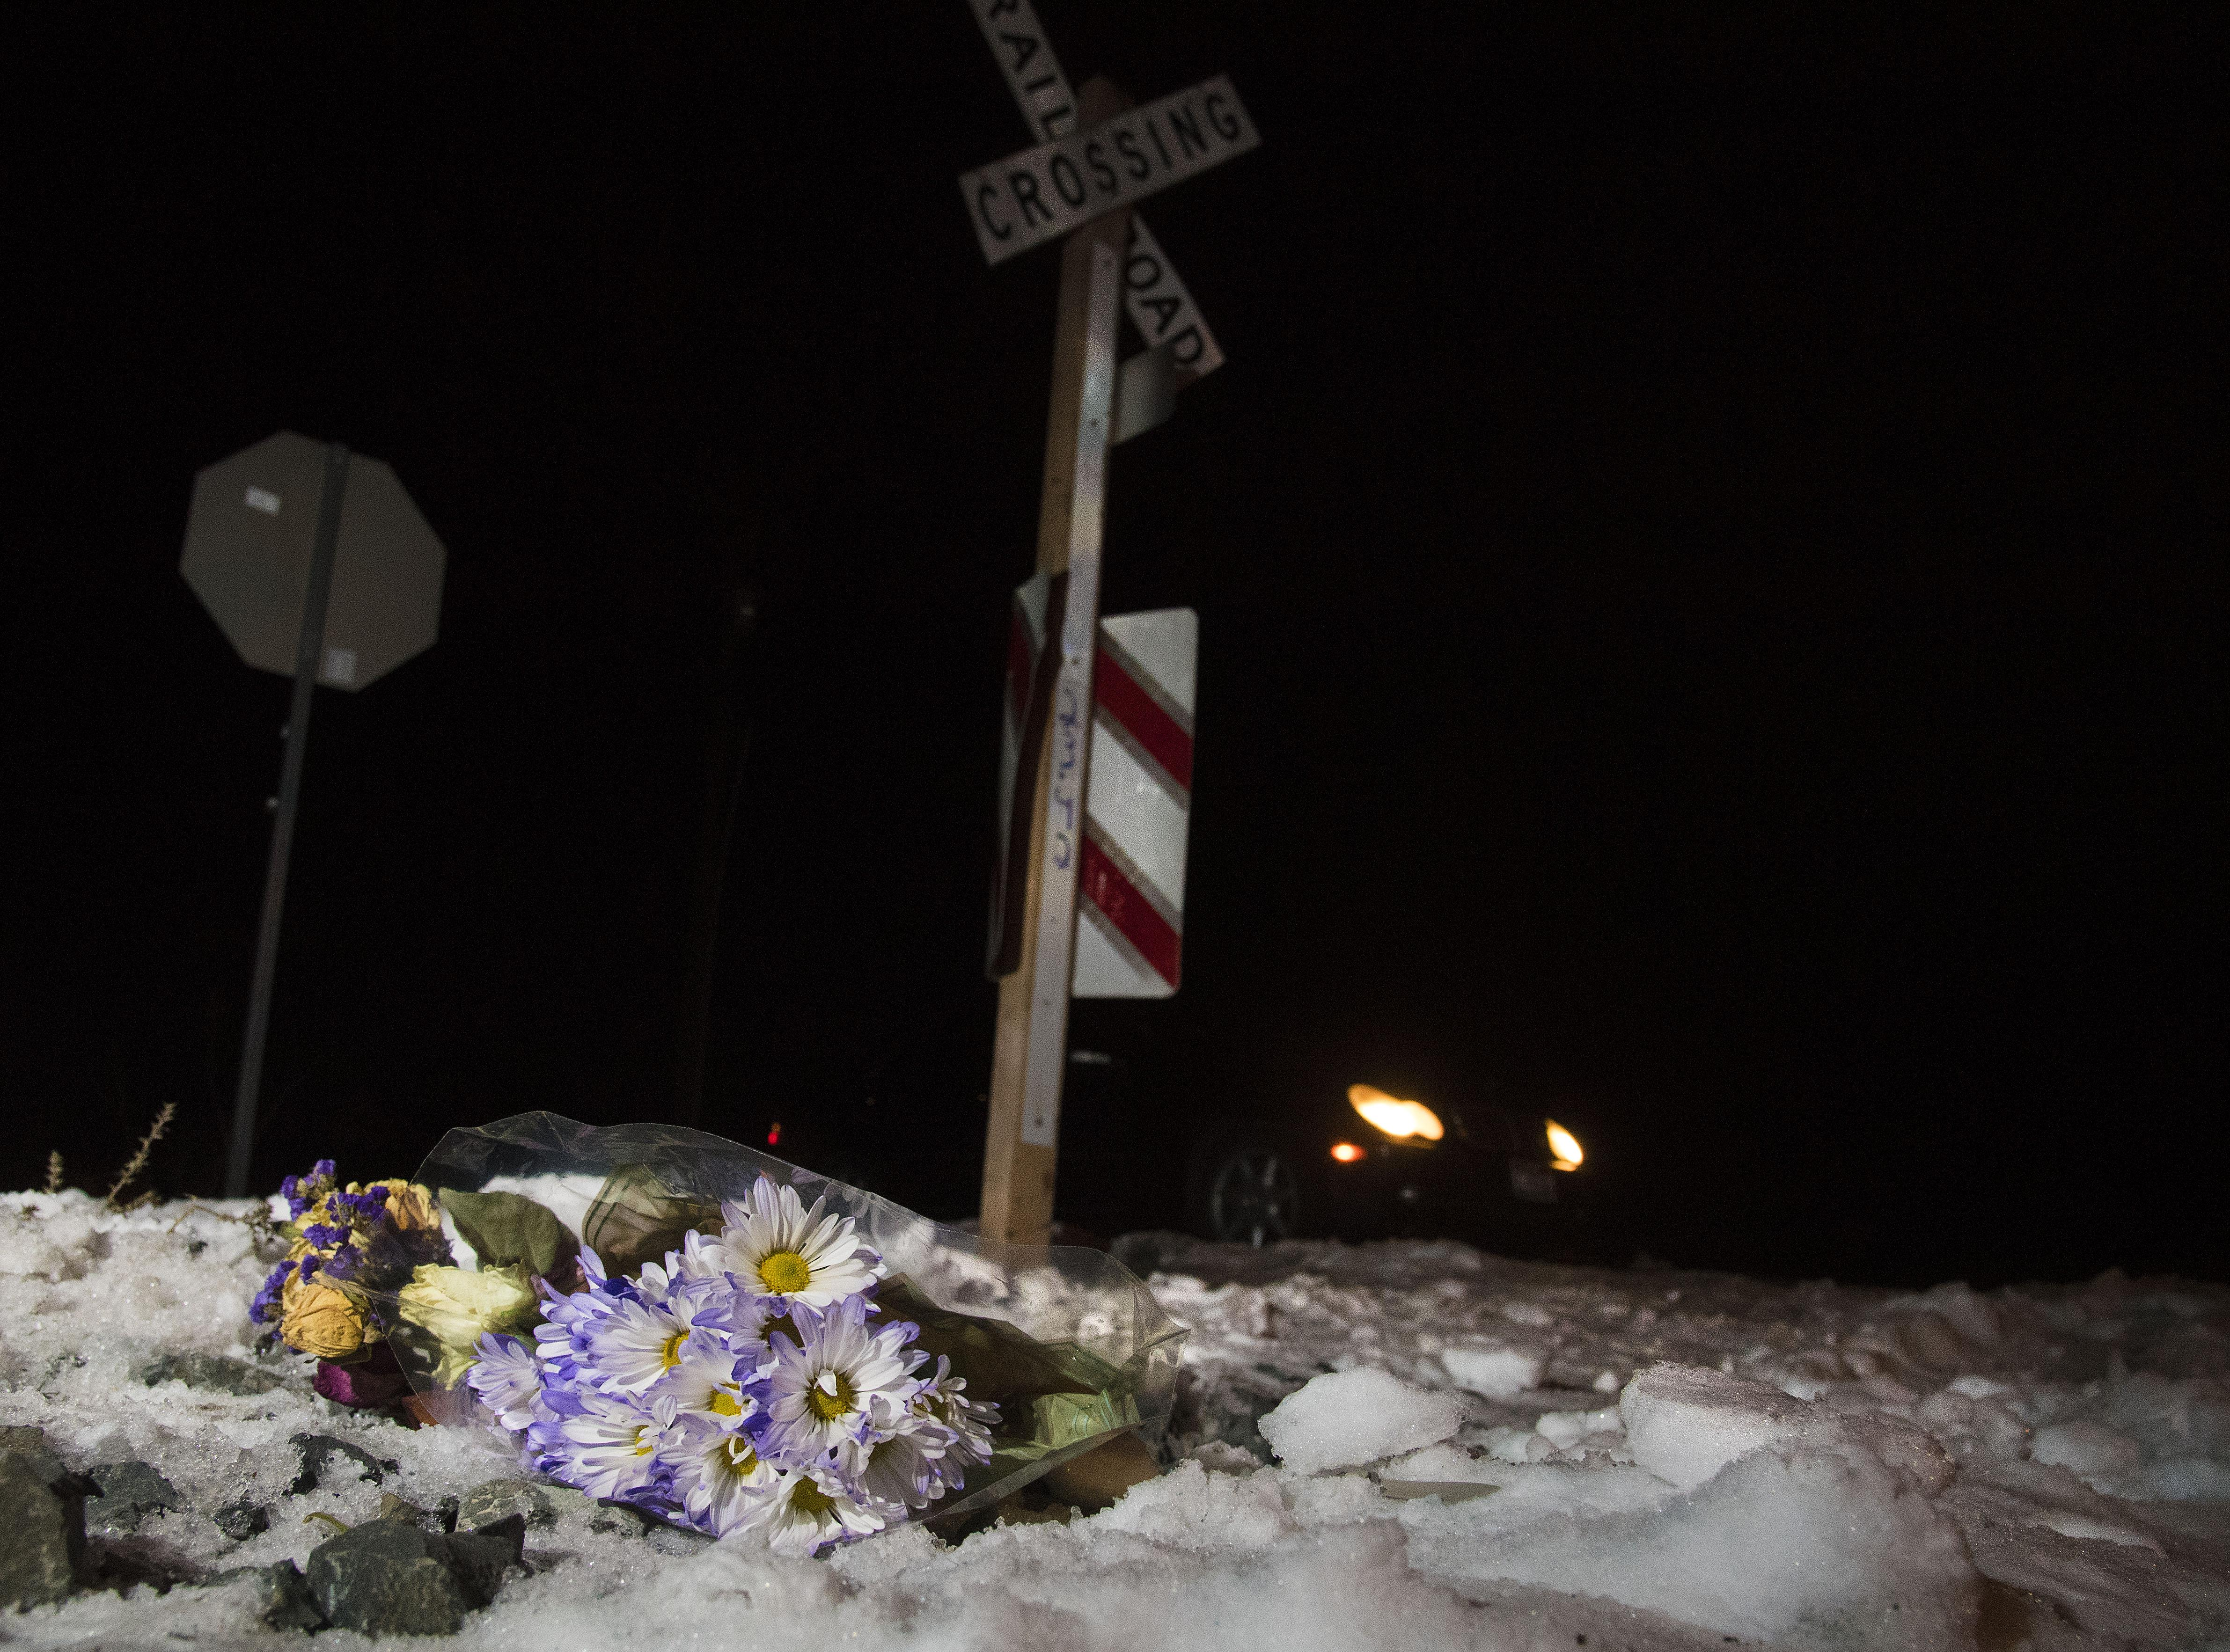 Railroad crossing upgraded year after fatal wreck   The